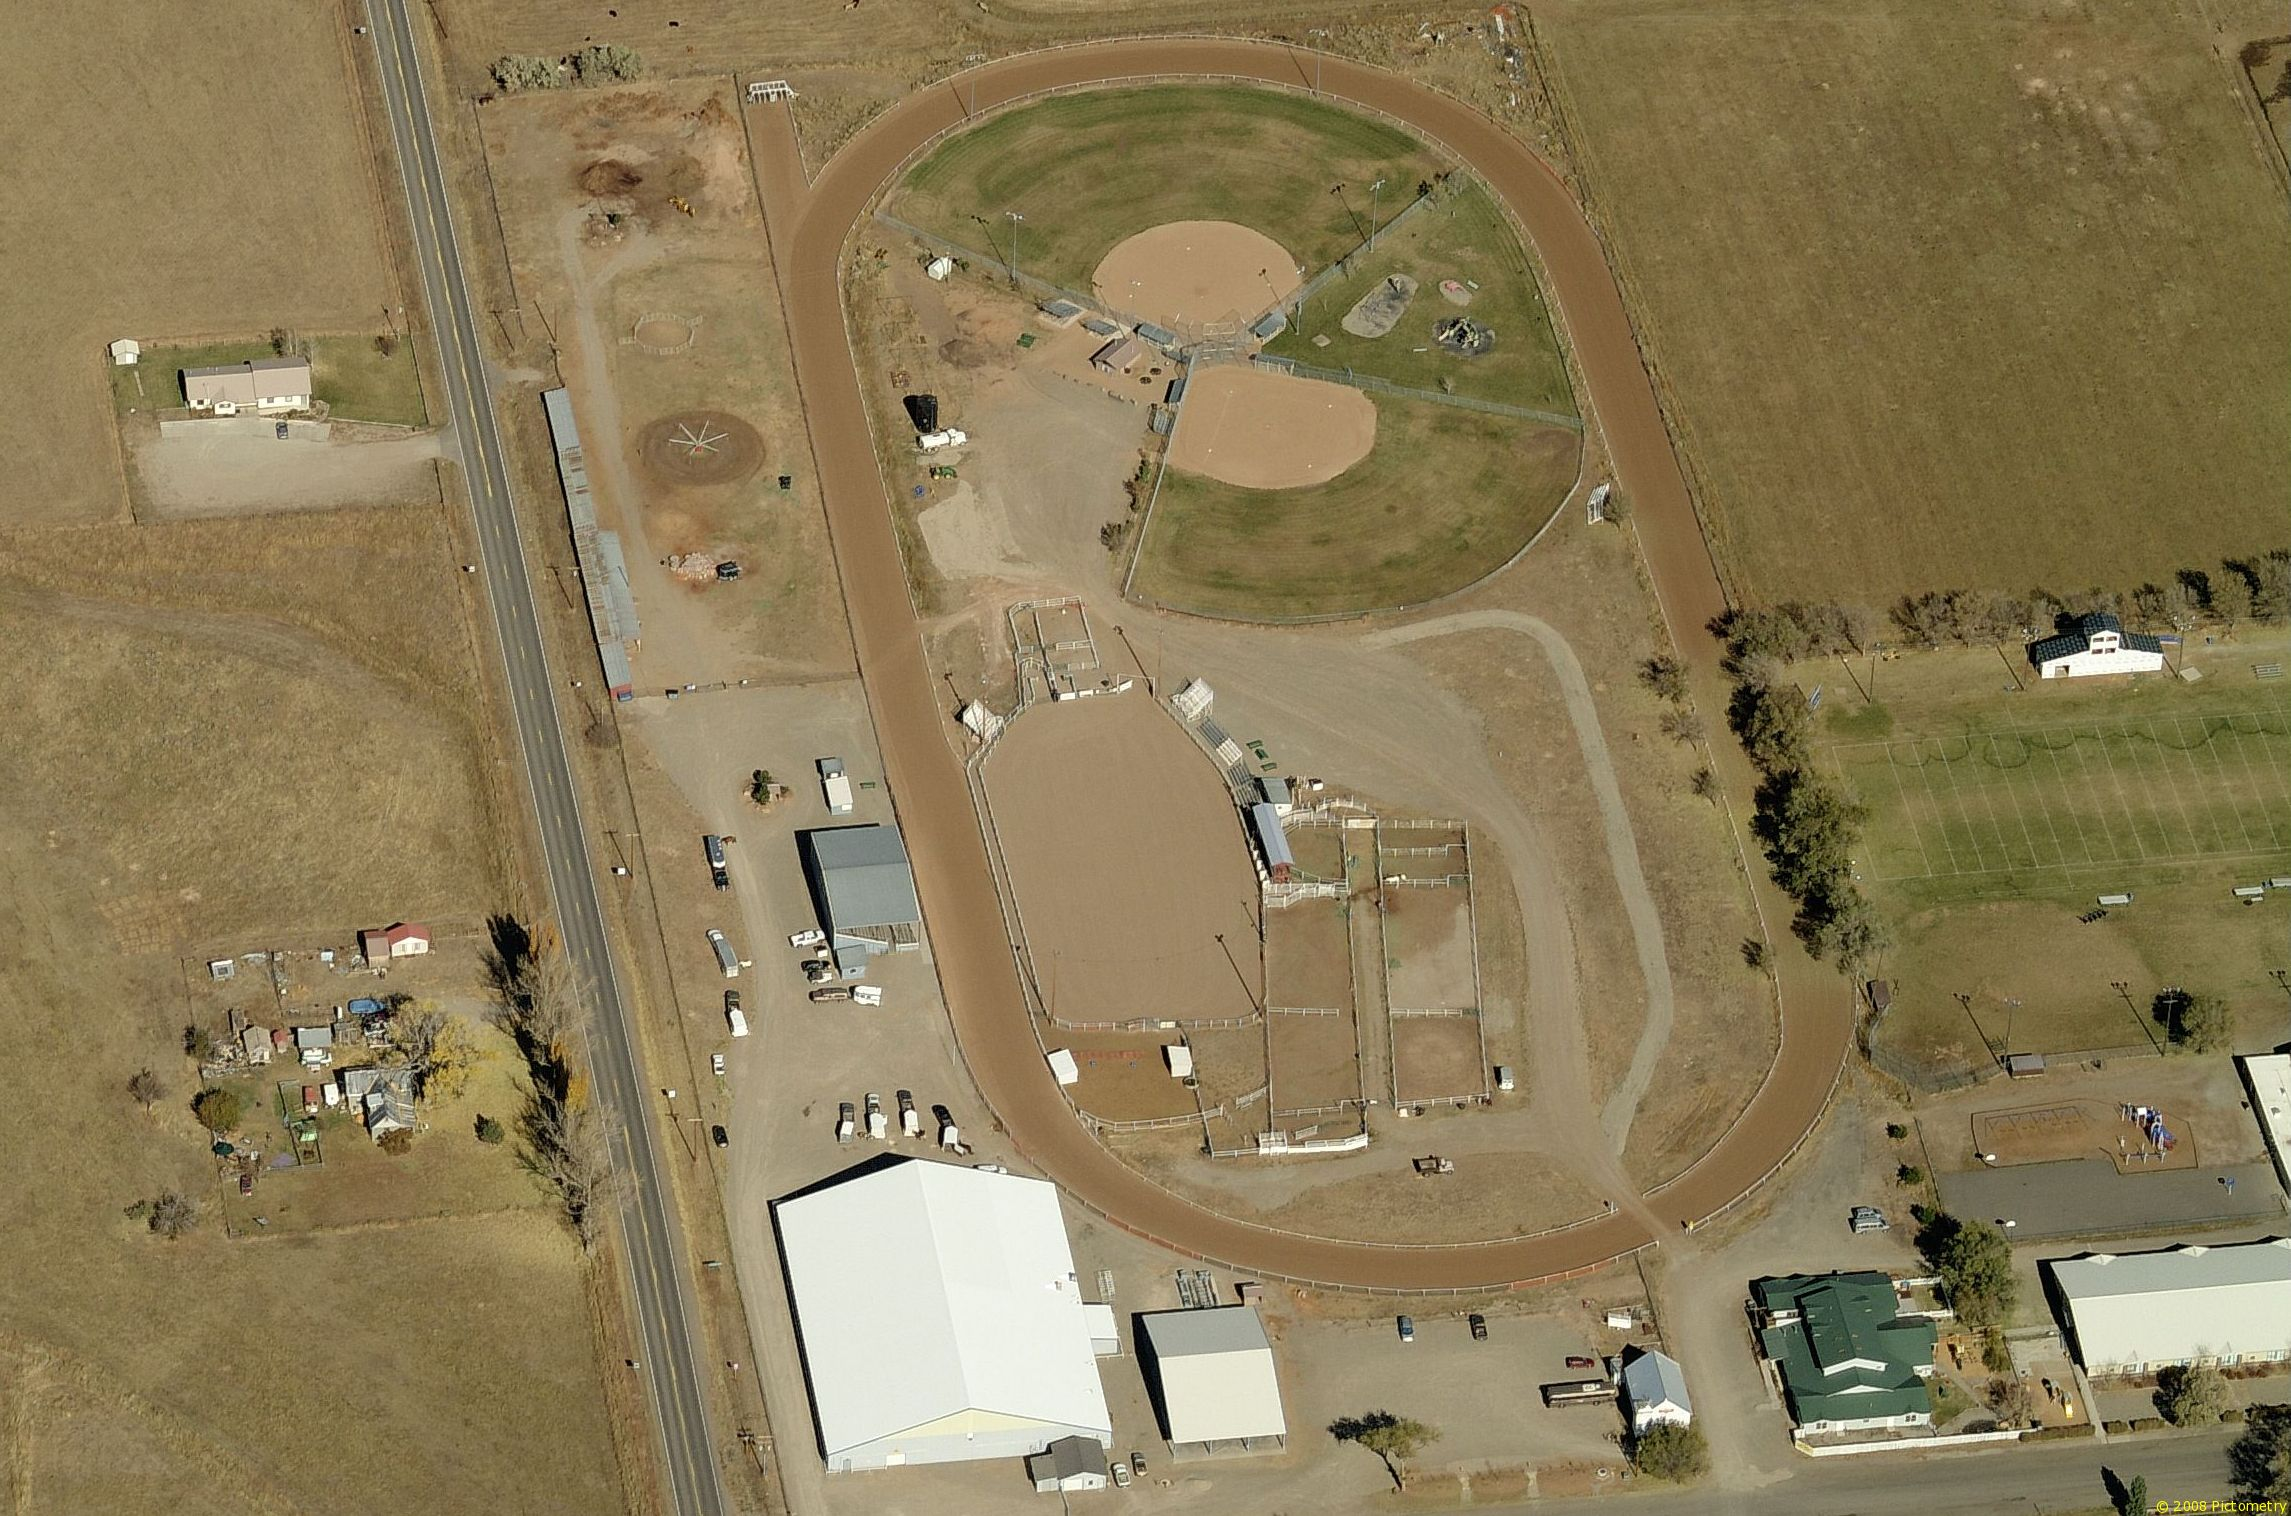 County Fairgrounds